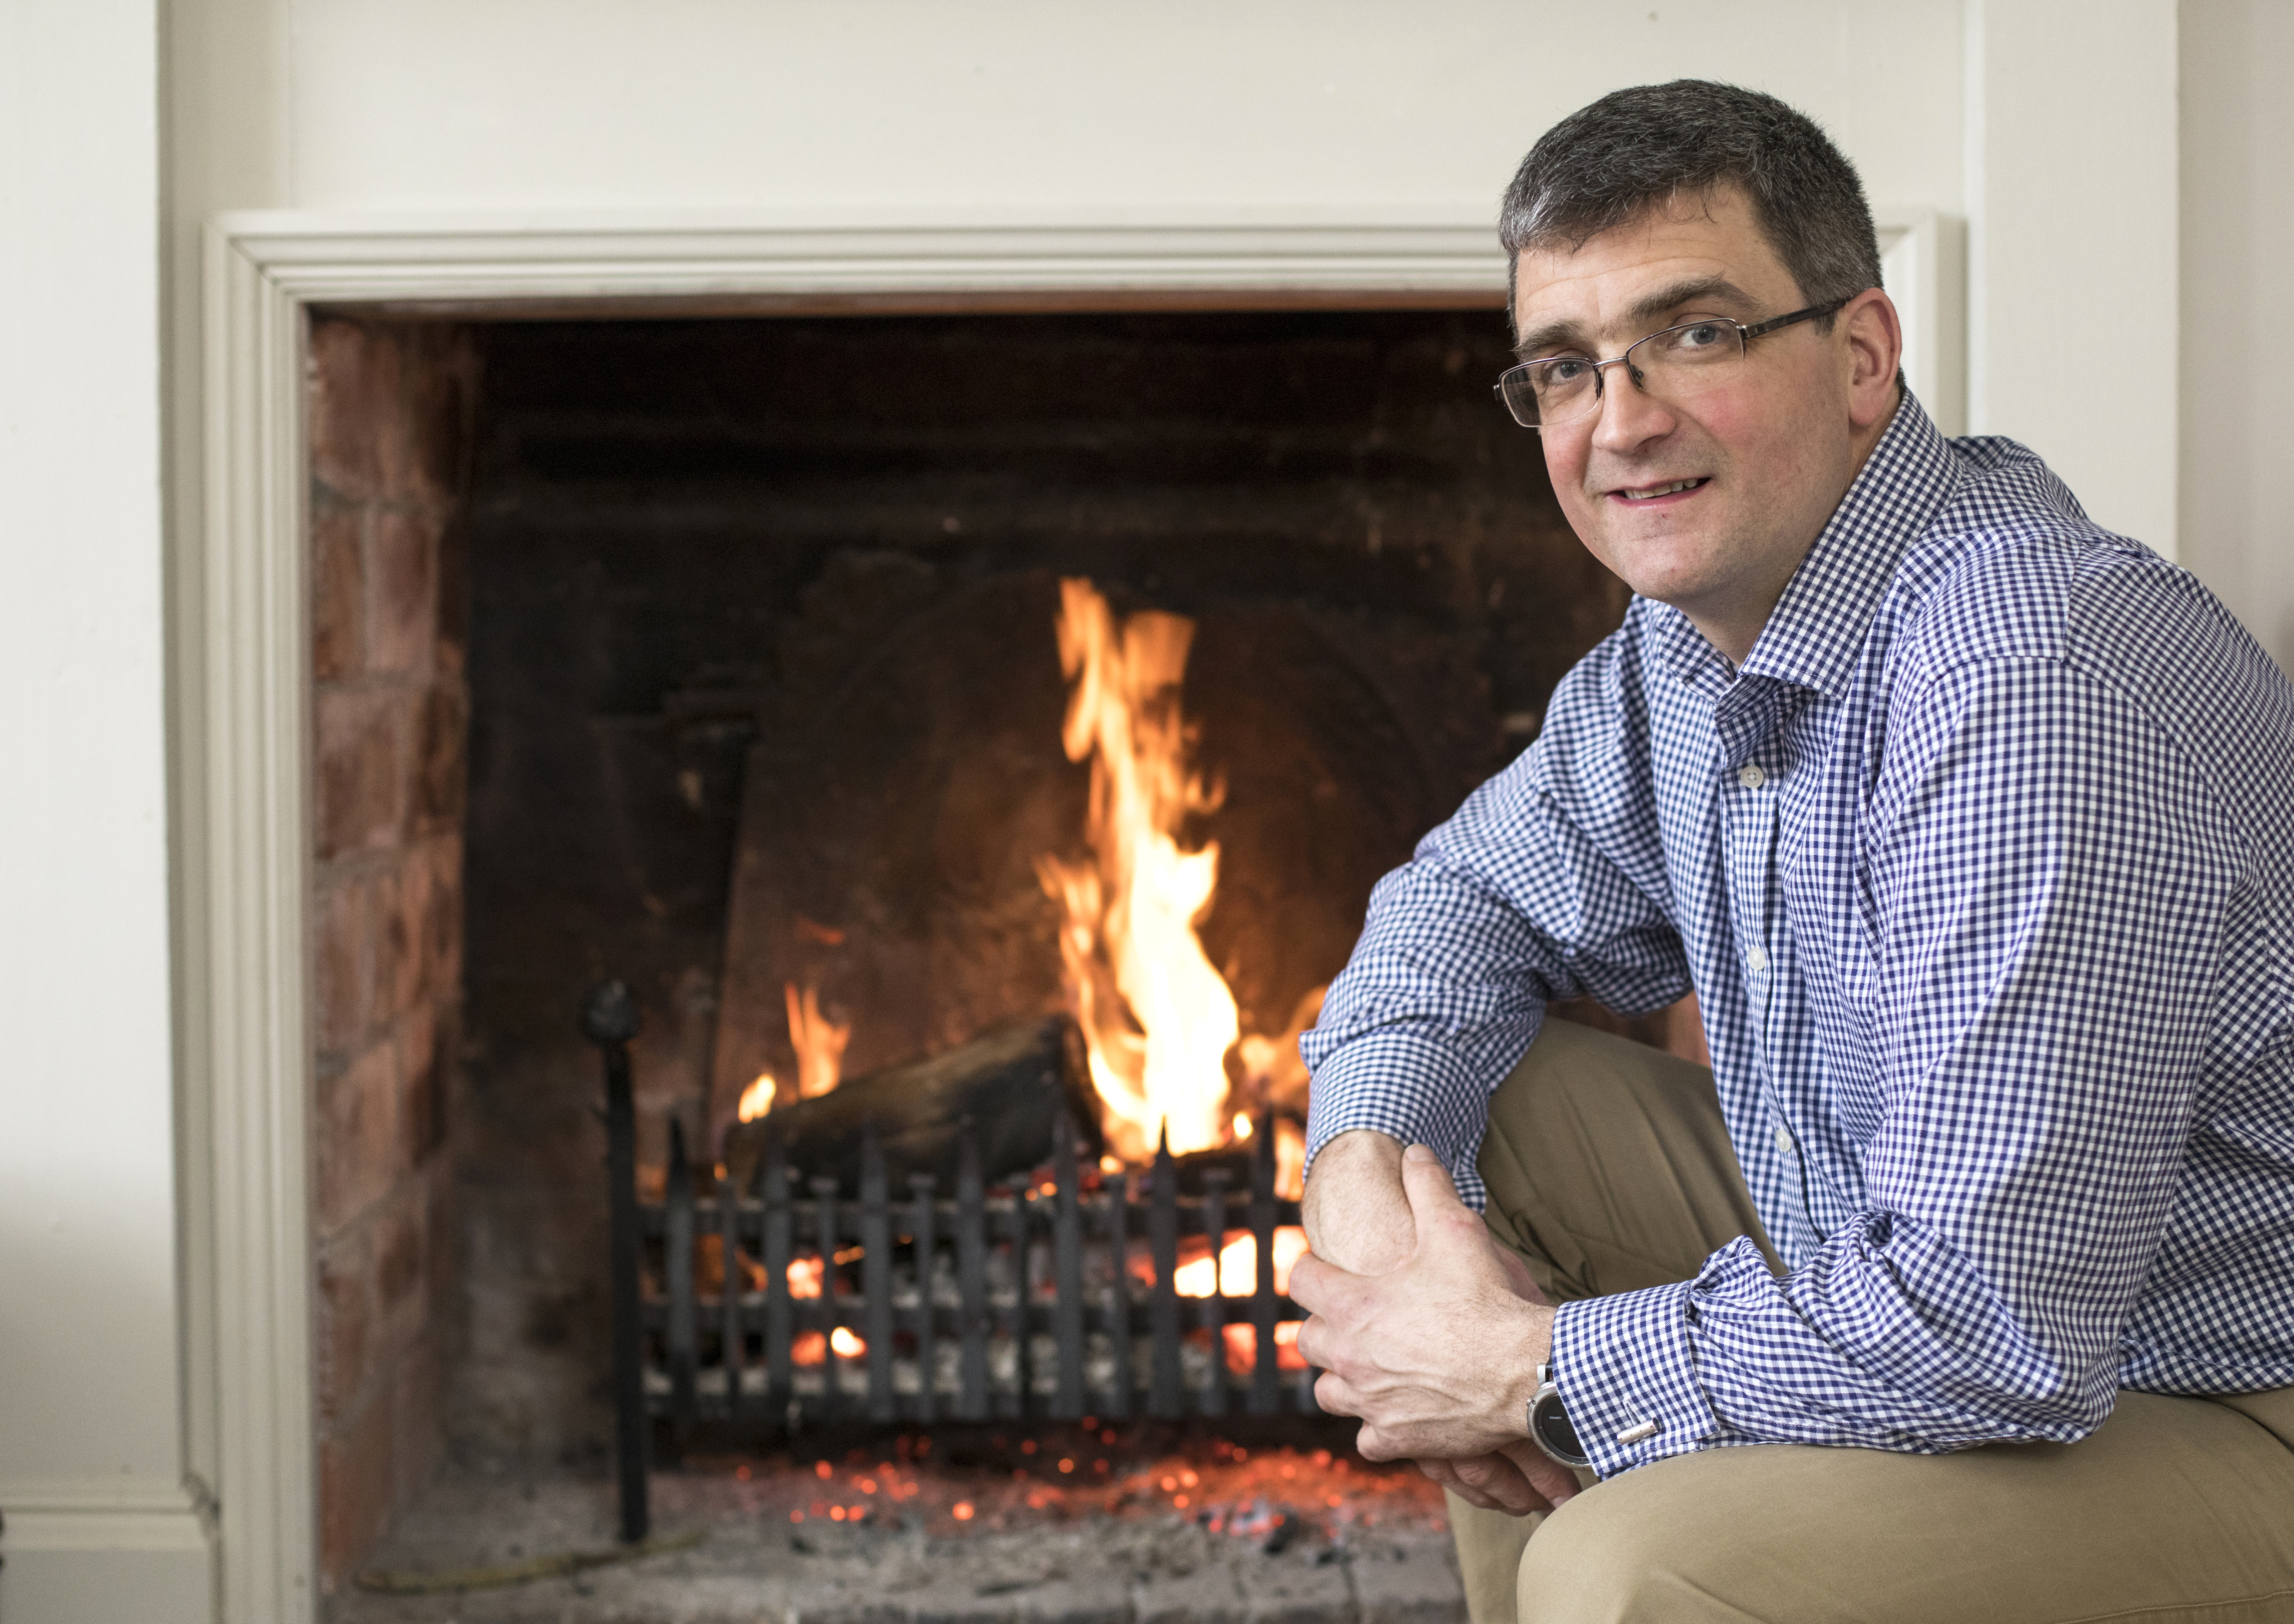 Meet The Chimney Expert Turner Baker